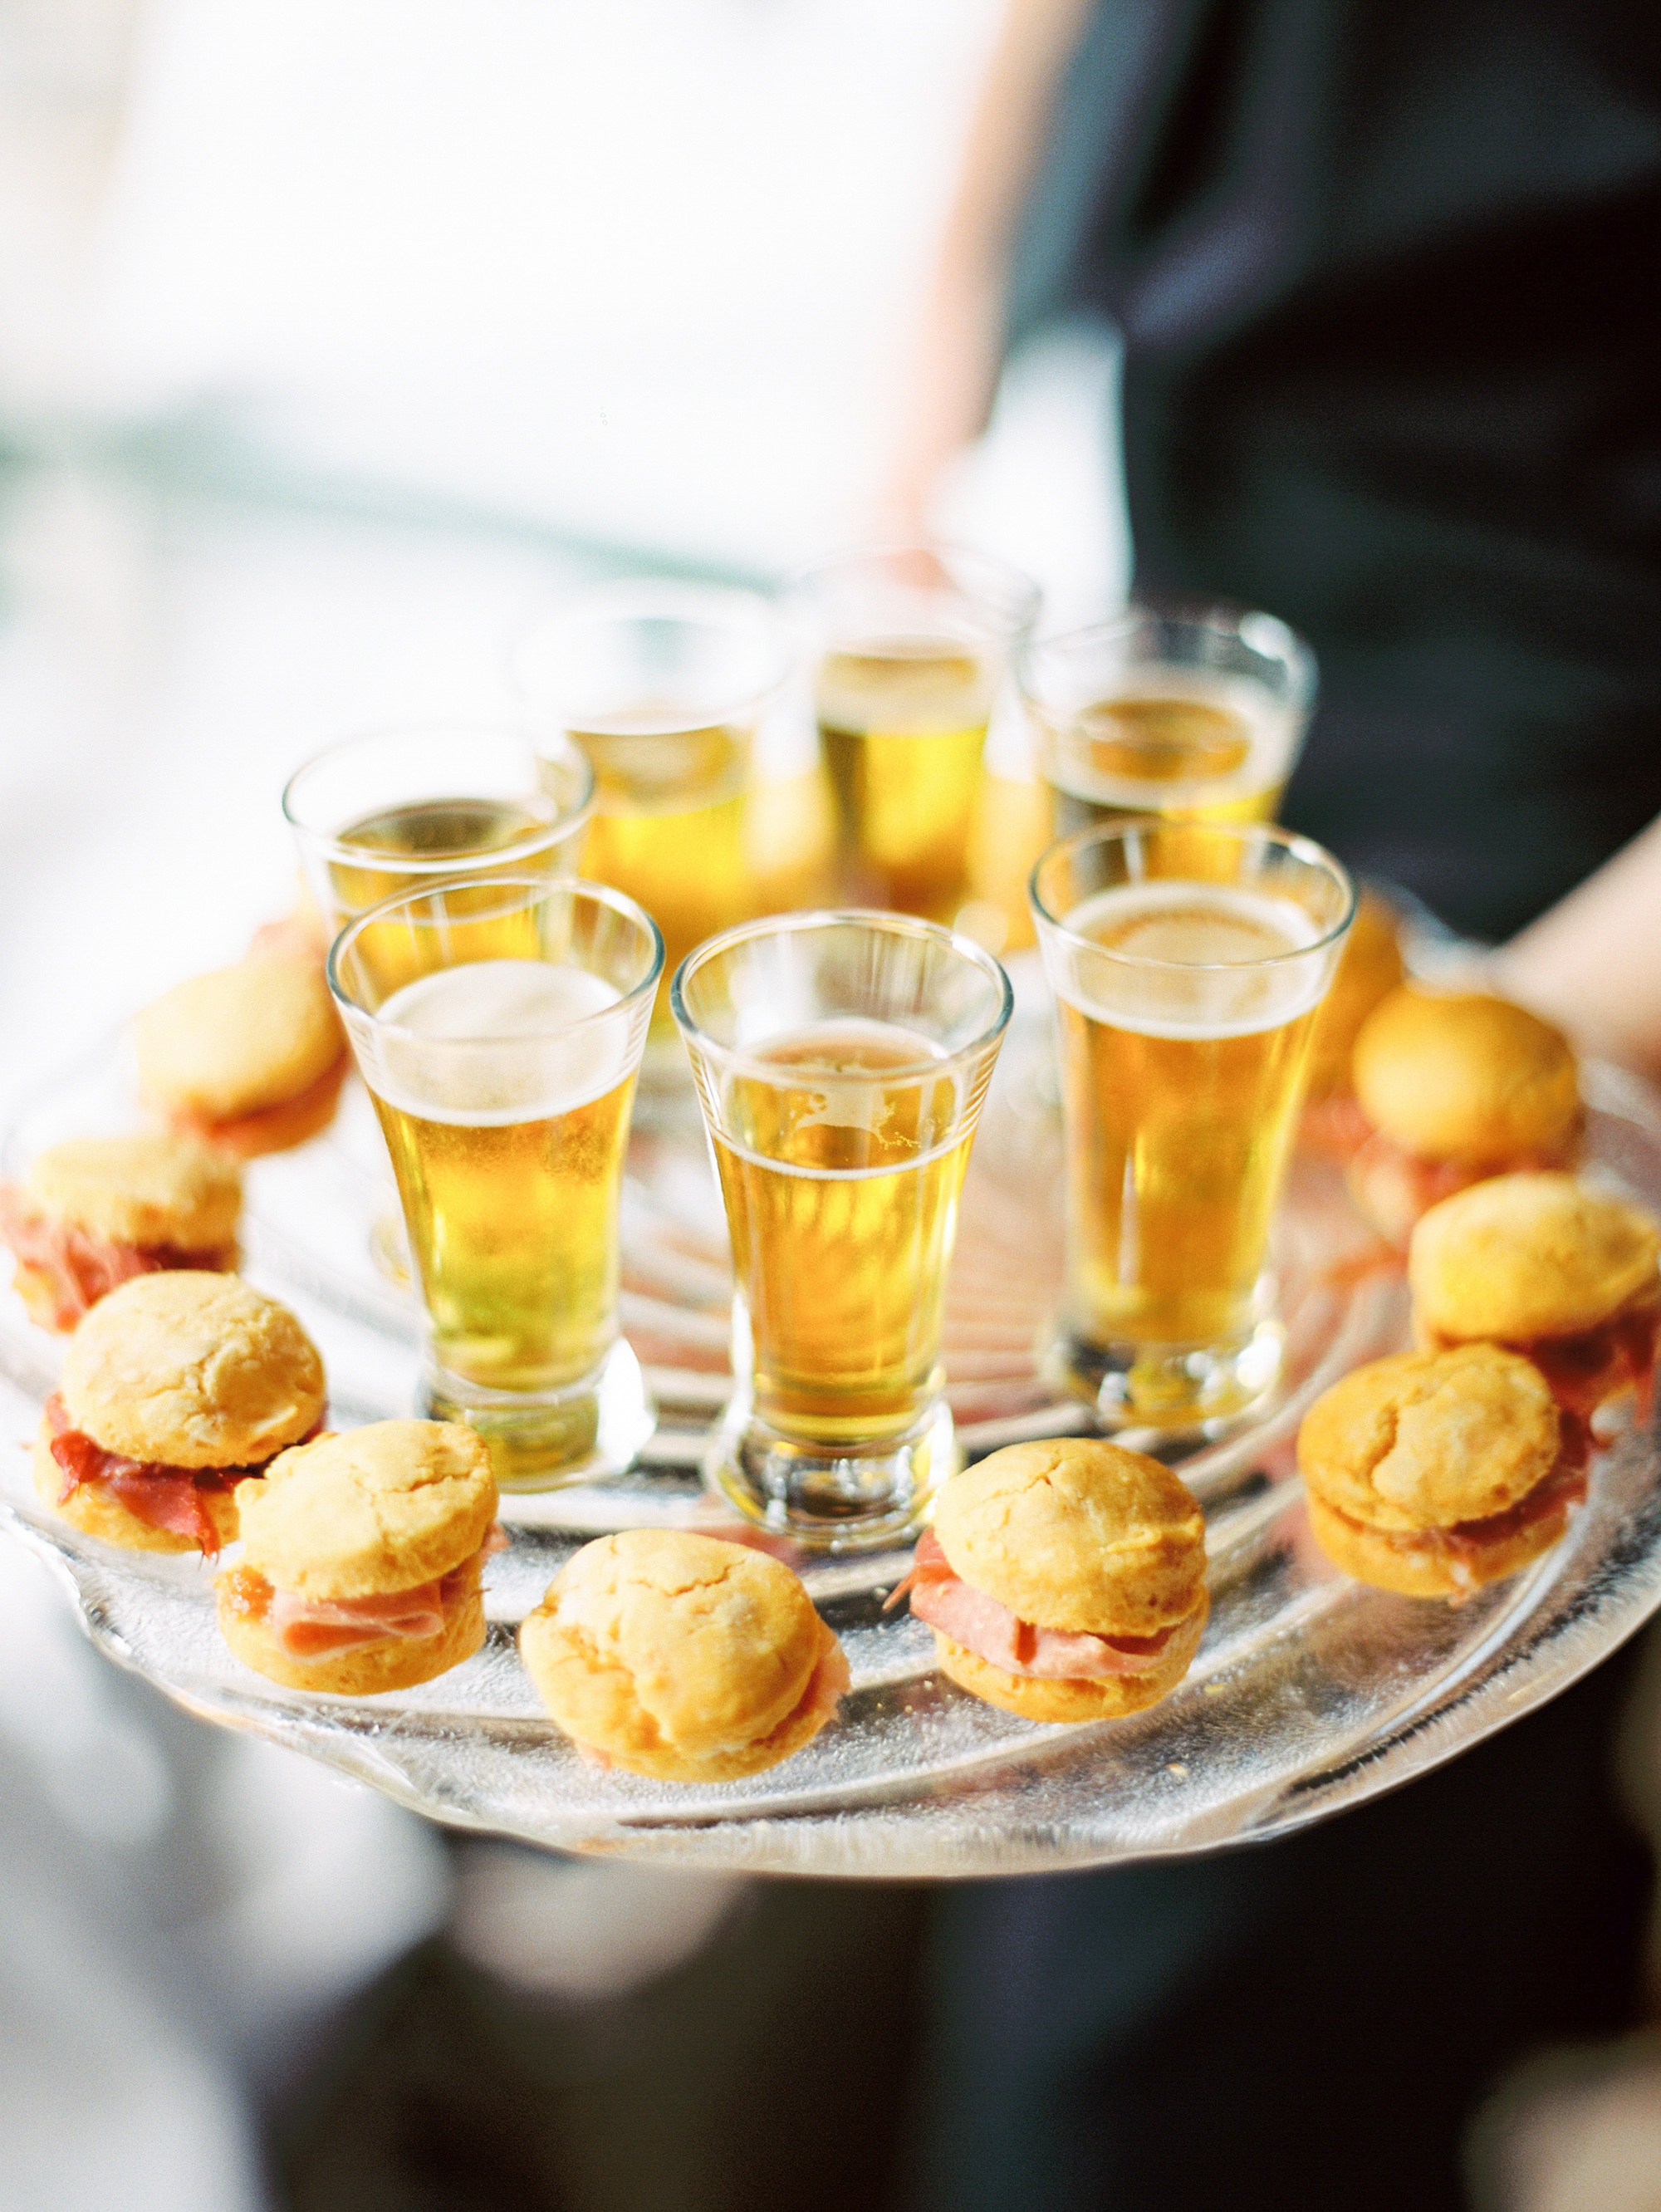 Biscuits and Beer